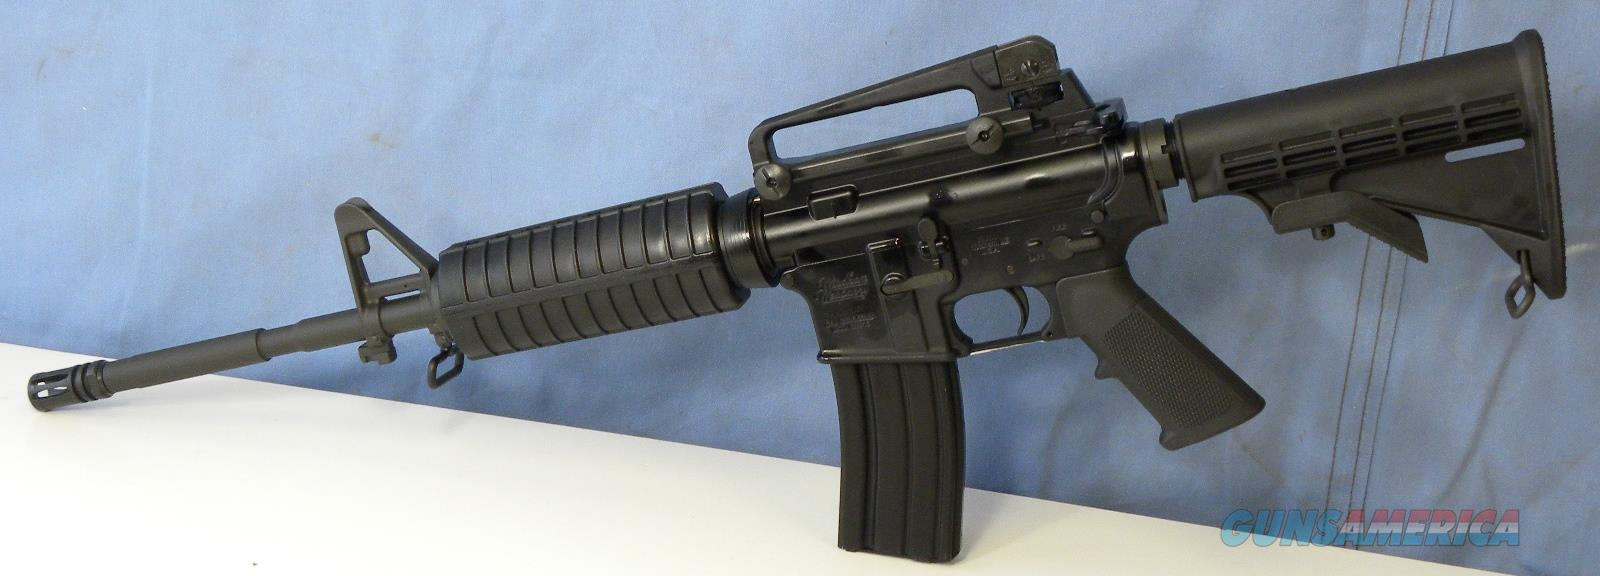 Windham Weaponry R16M4A4T  Guns > Rifles > Windham Weaponry Rifles